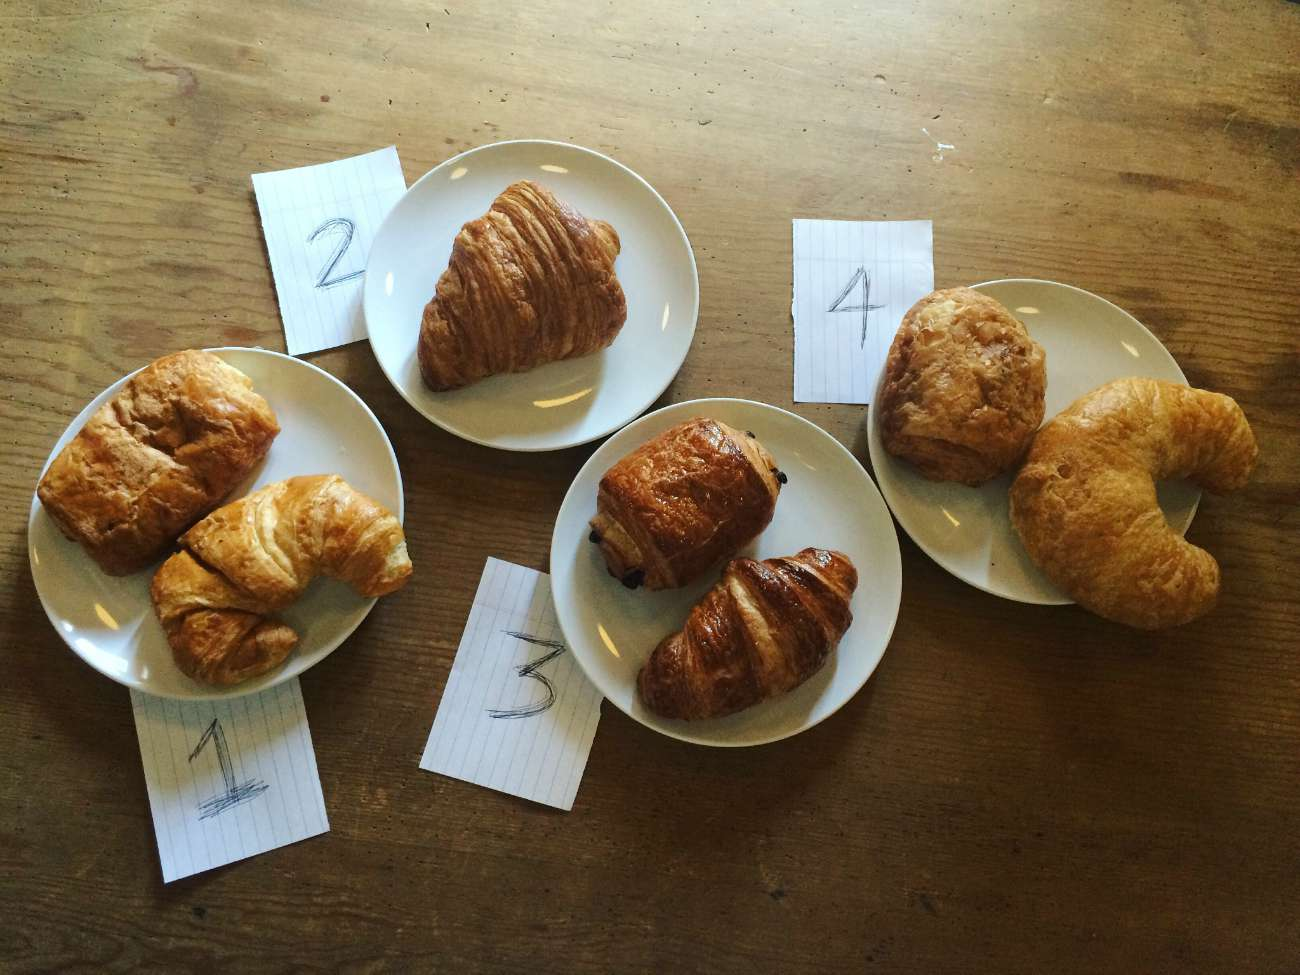 Charlotte Croissant Wars: 4 bakeries blind taste-tested and ranked